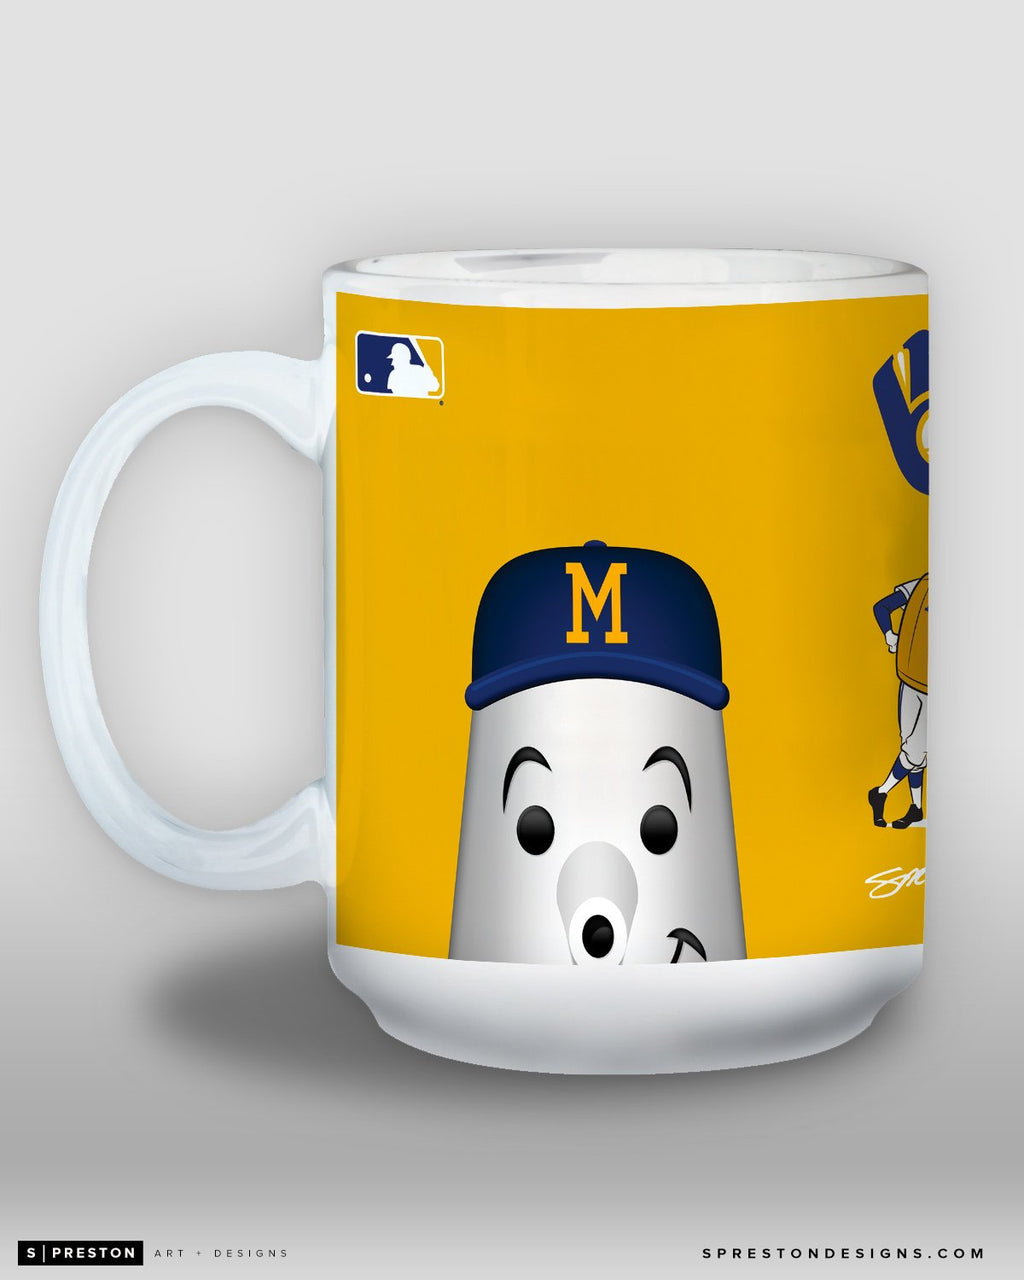 Minimalist Barrelman Coffee Mug - MLB Licensed - Milwaukee Brewers Mascot